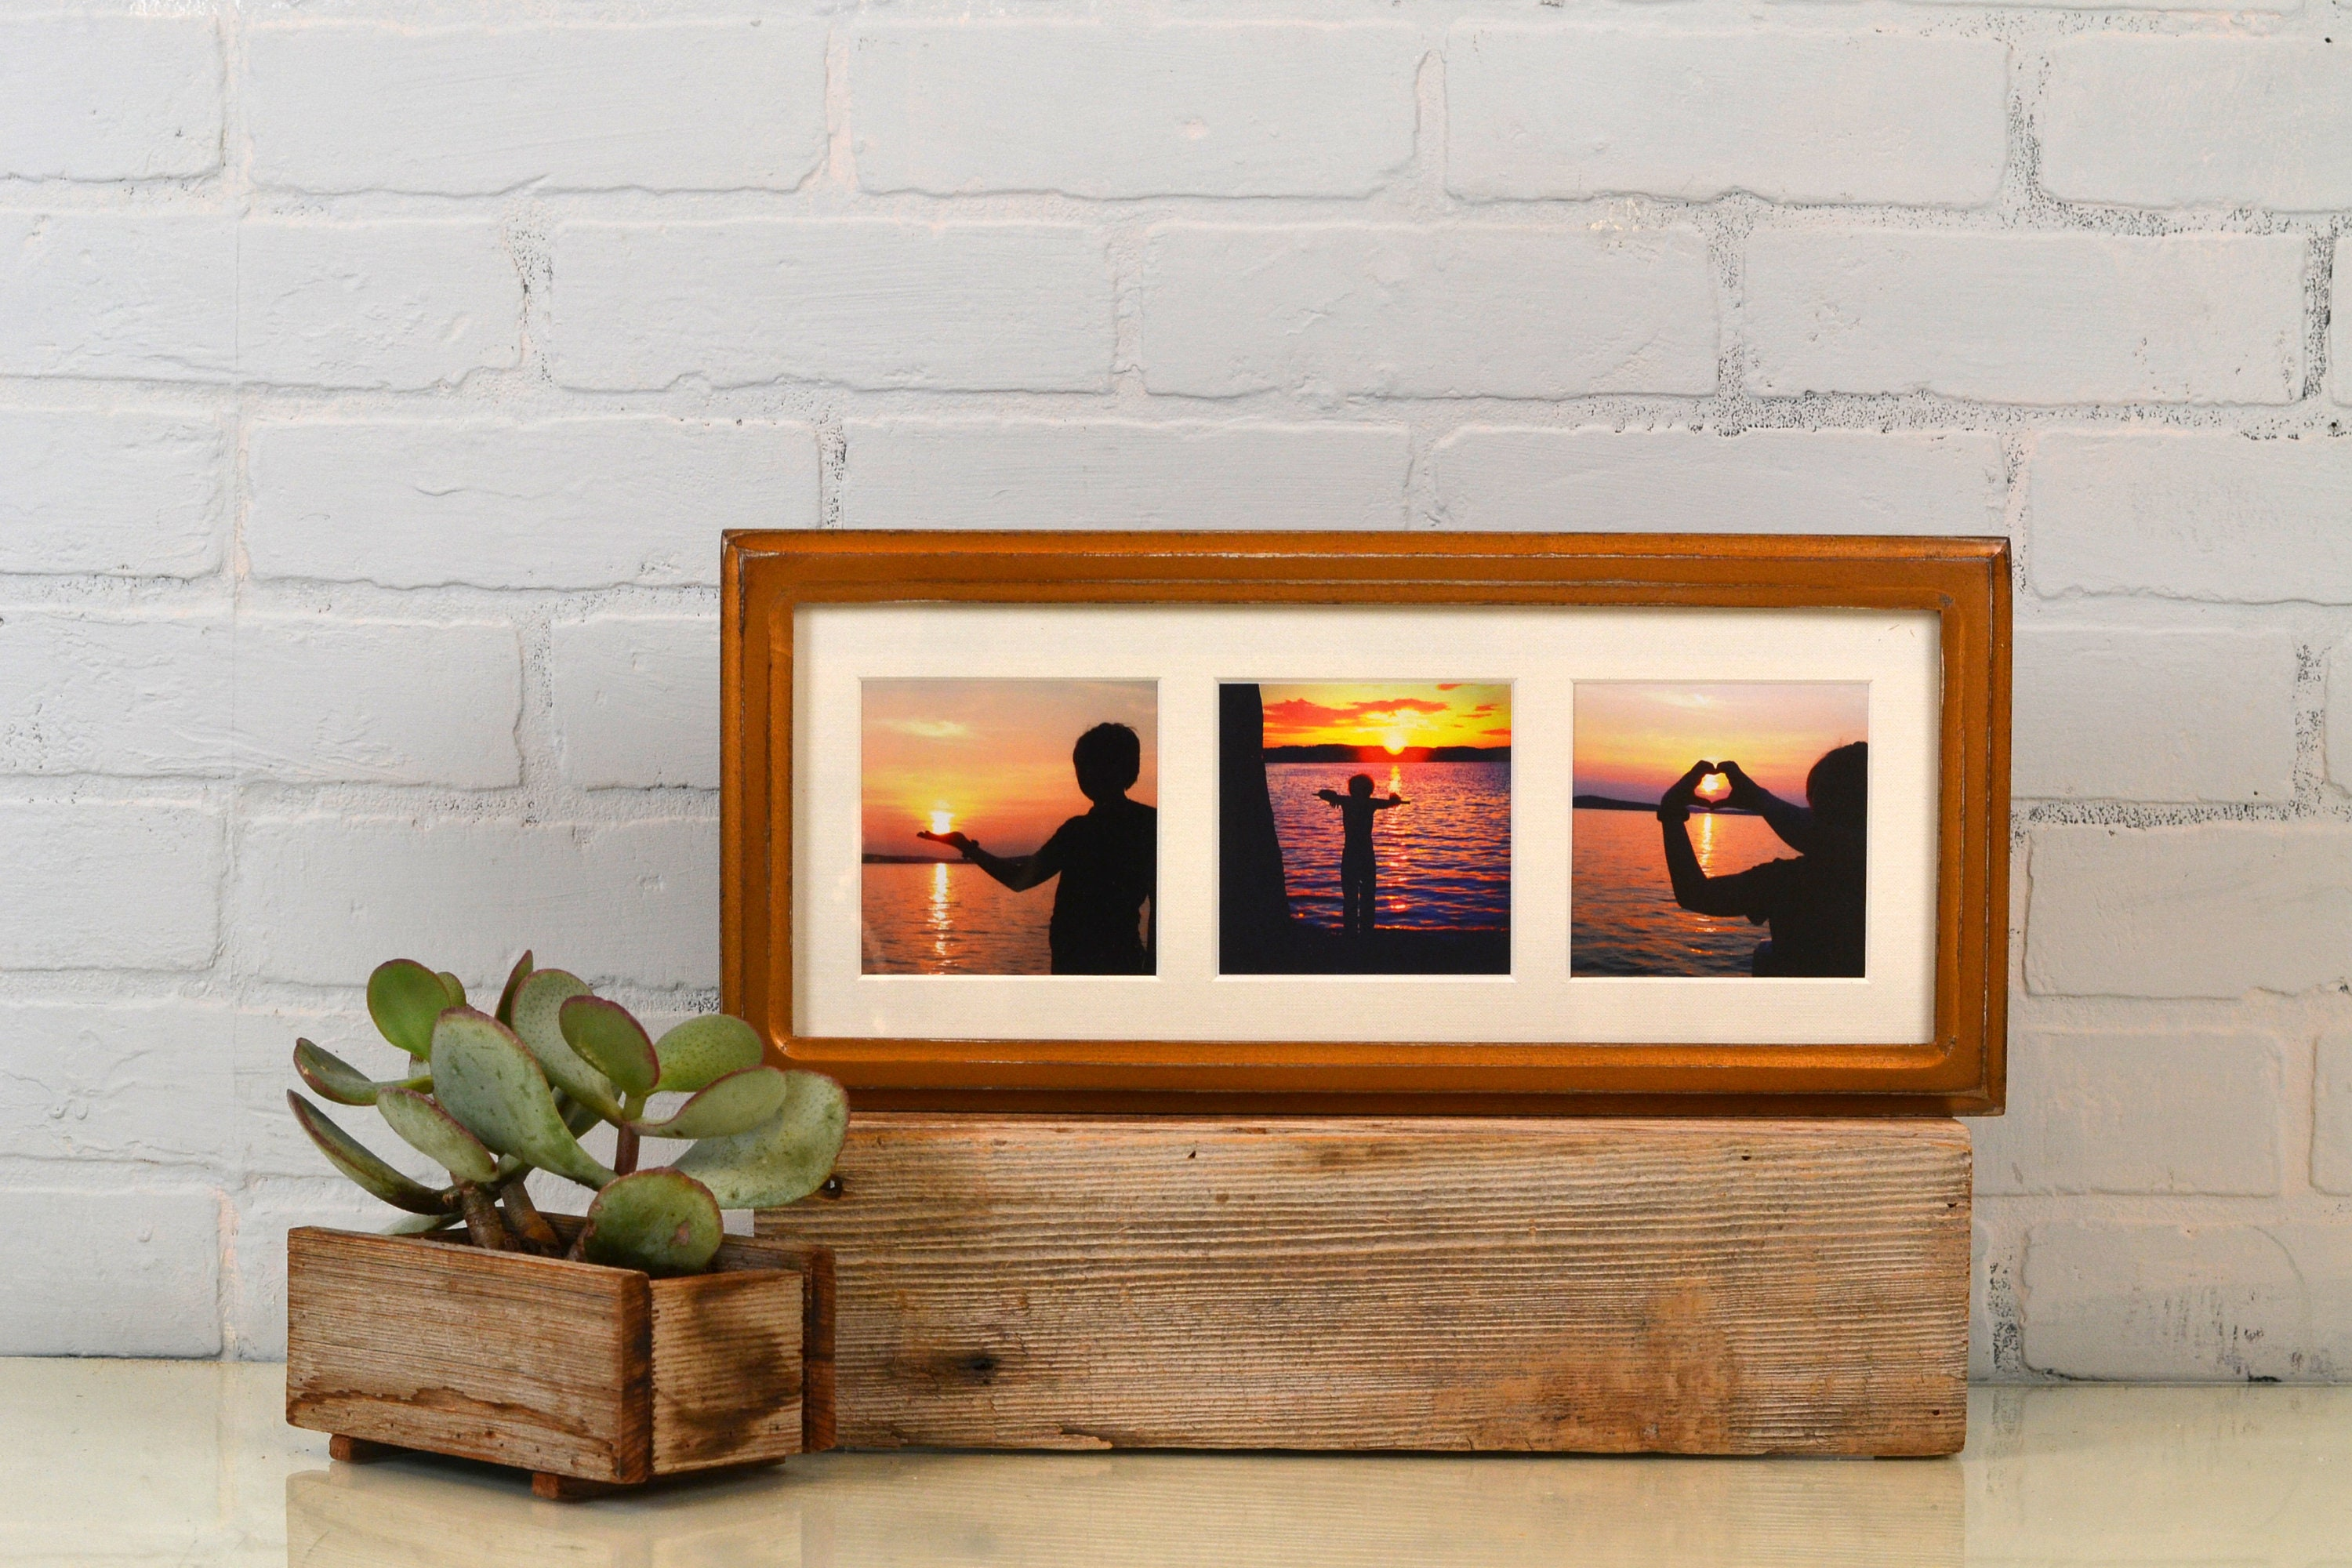 6x15 Picture Frame in Double Cove Style with Mat Window Openings for ...